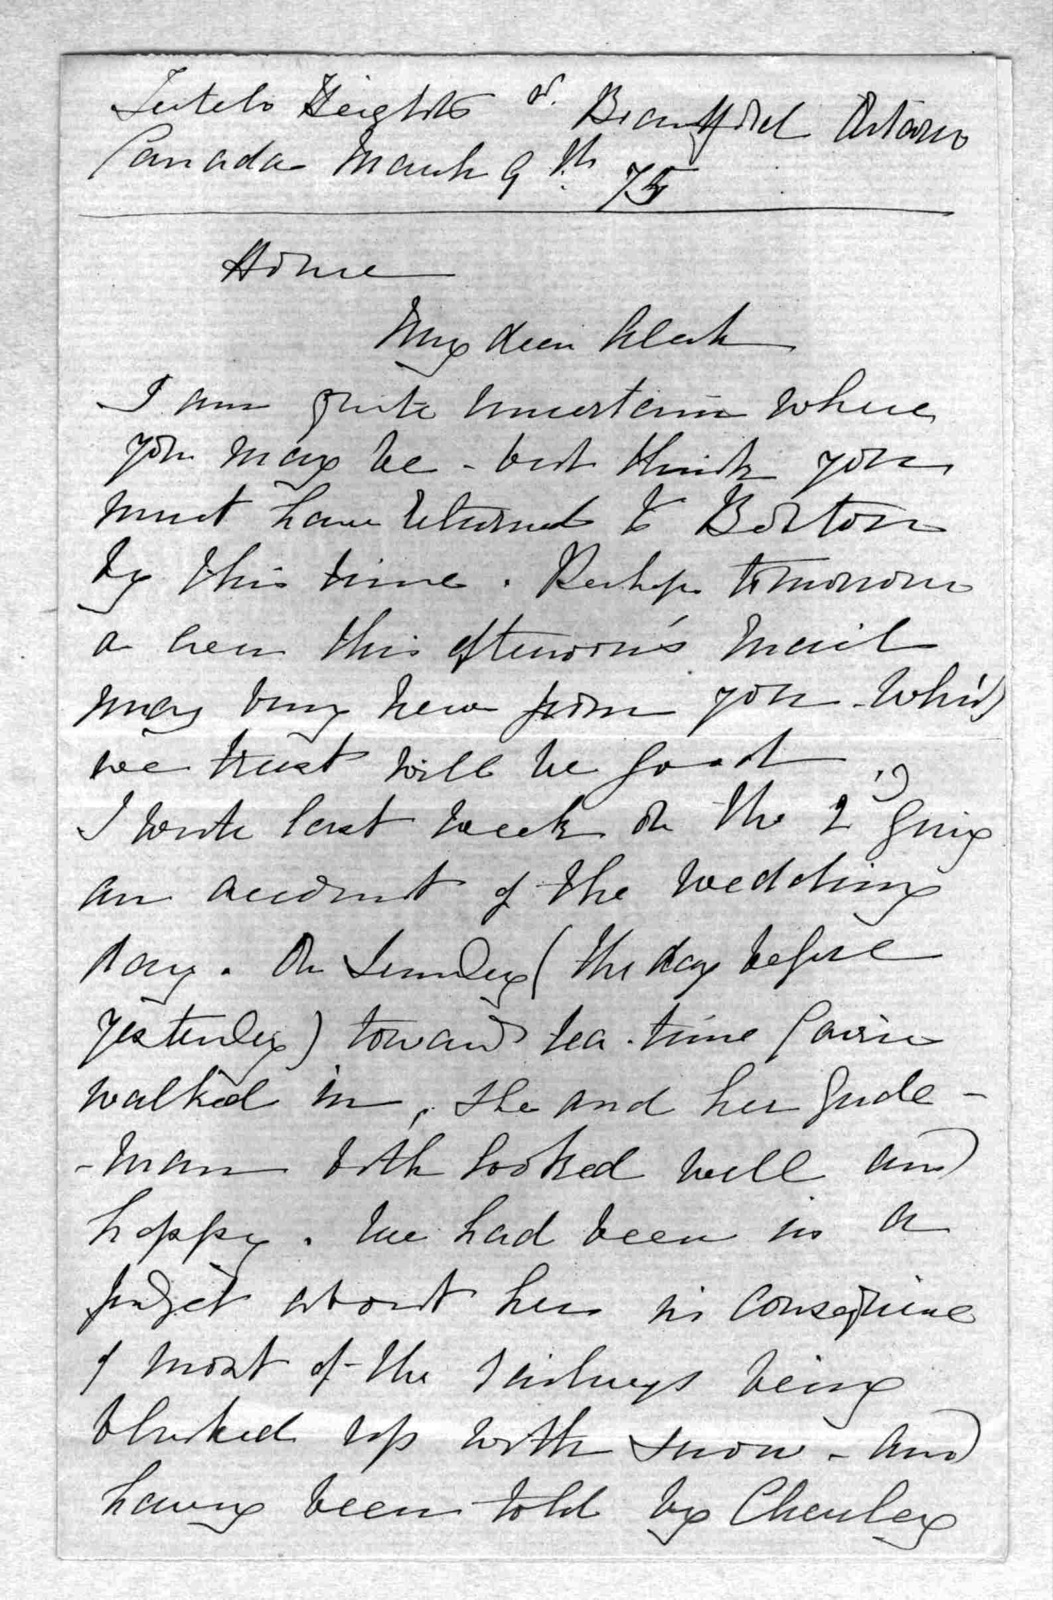 Letter from Eliza Symonds Bell to Alexander Graham Bell, March 9, 1875